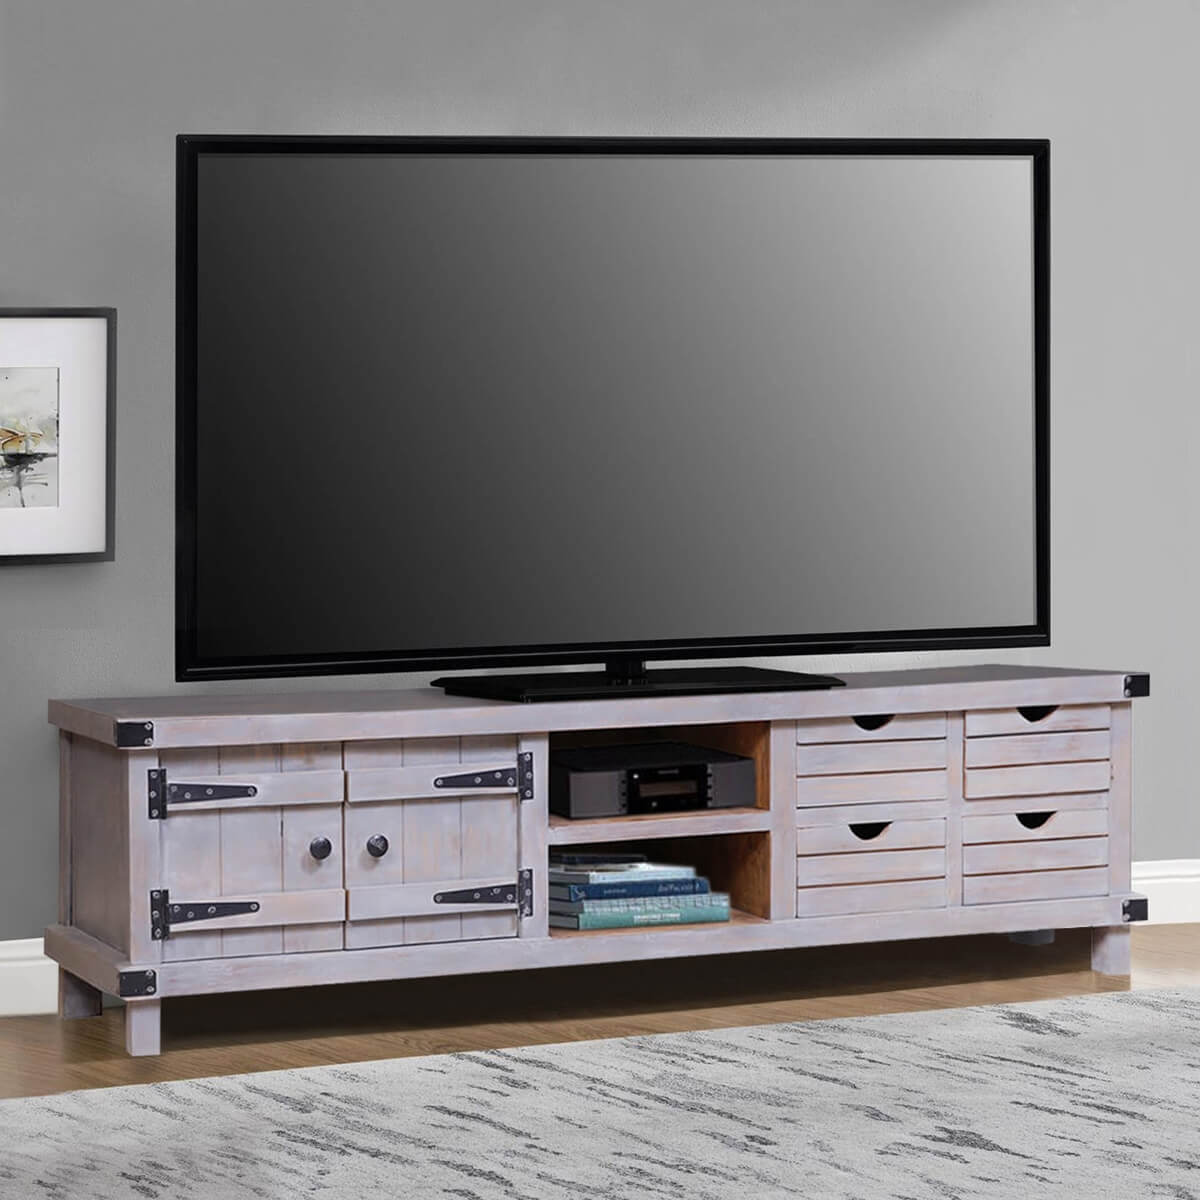 Gibsland Unique Reclaimed Wood Furniture Media Console TV Stand